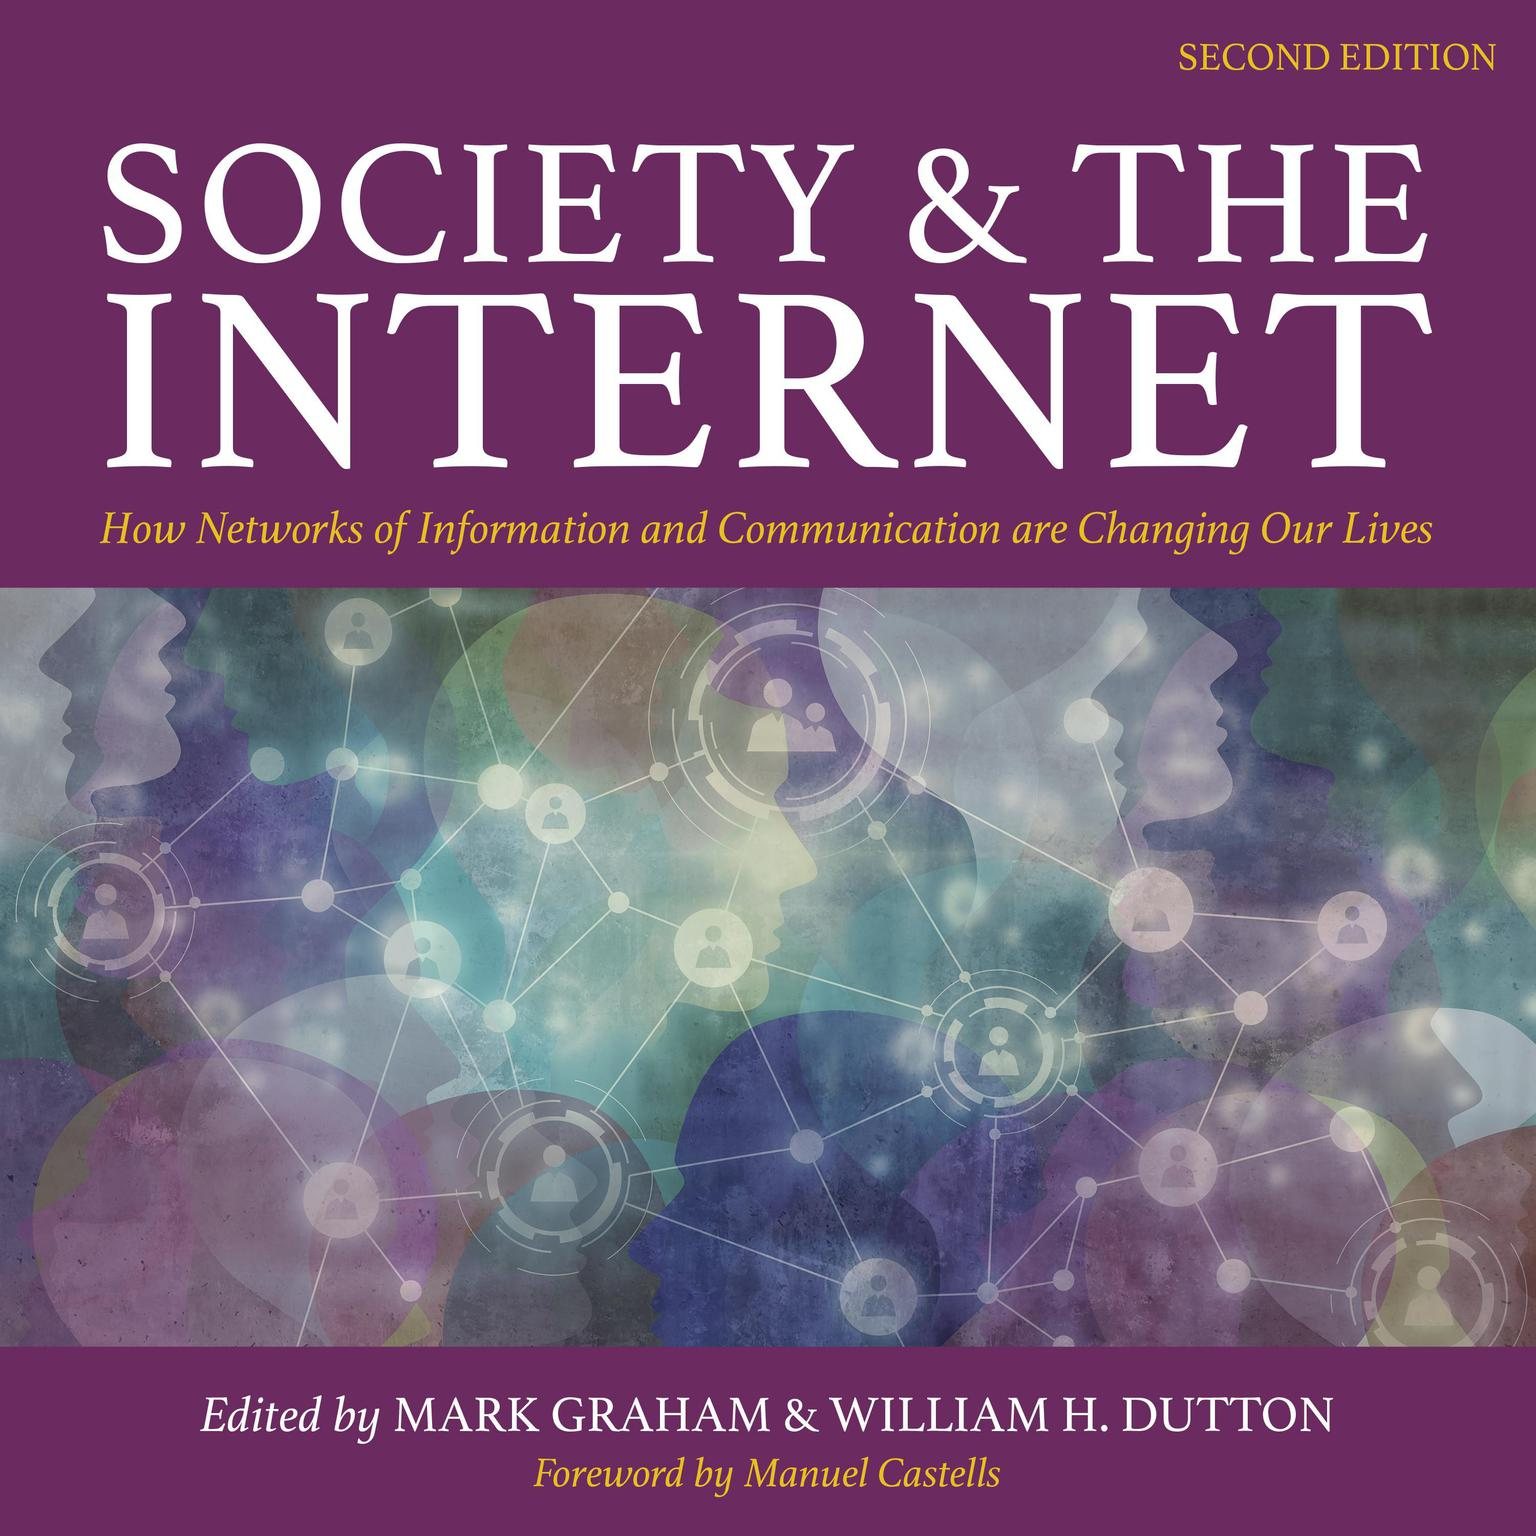 Printable Society and the Internet, 2nd Edition: How Networks of Information and Communication are Changing Our Lives Audiobook Cover Art